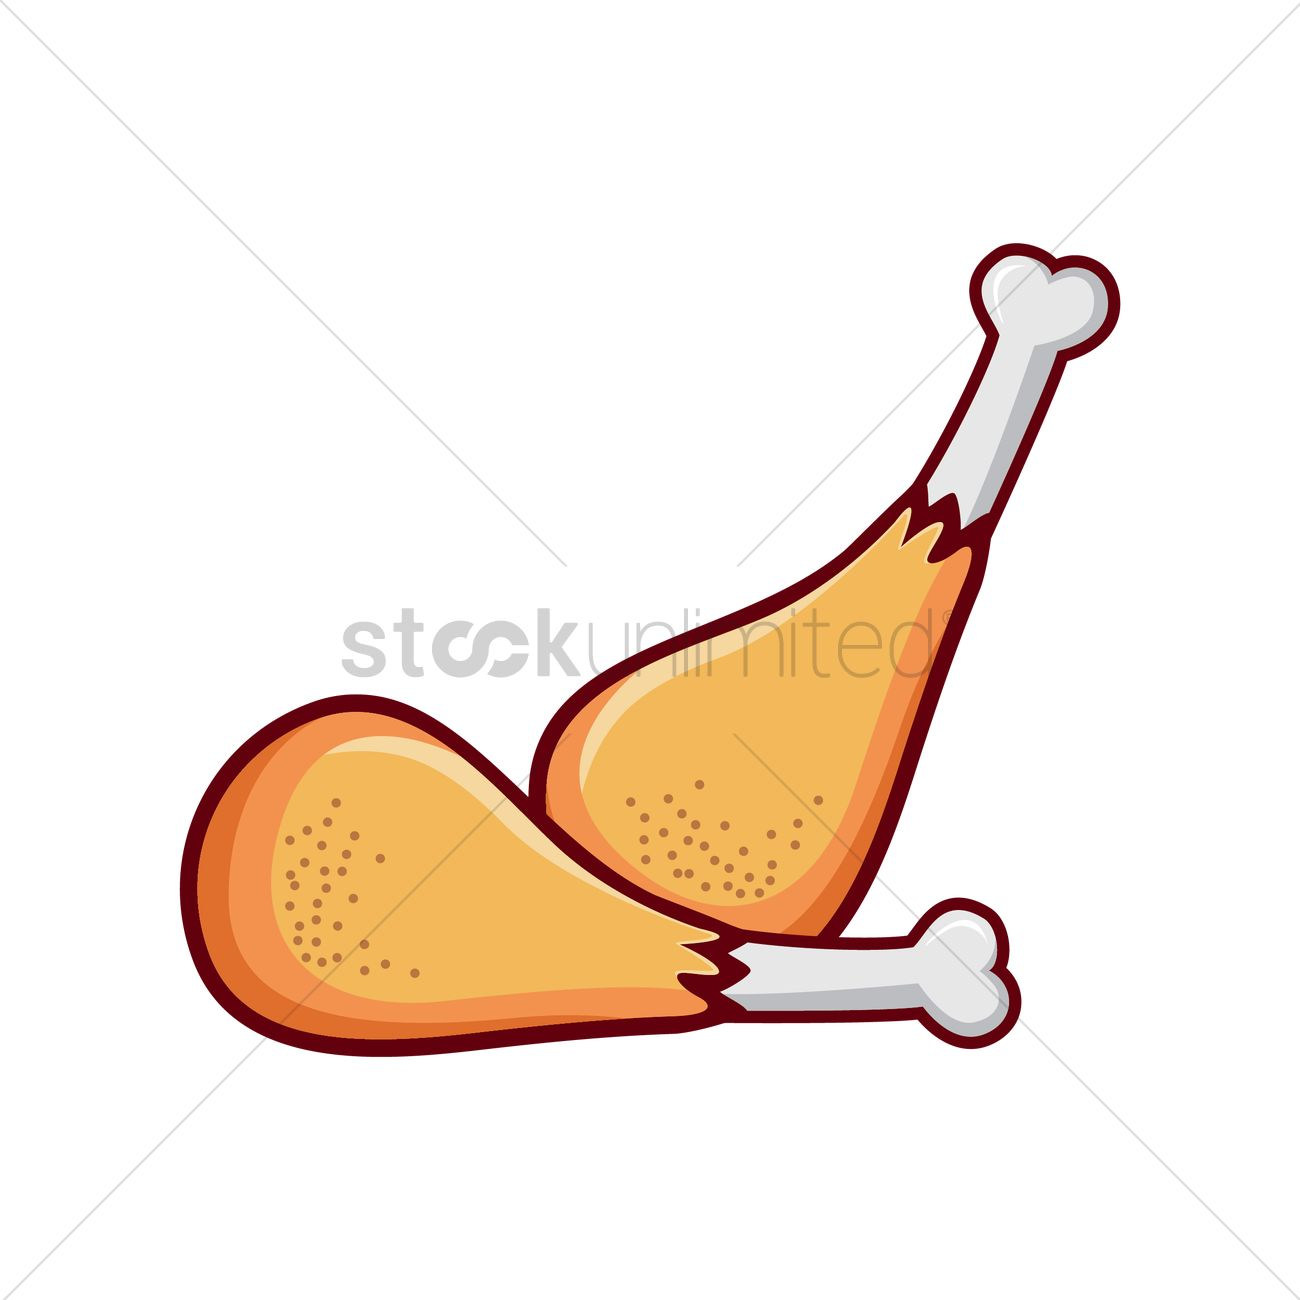 chicken drumsticks vector image 1954030 stockunlimited free chicken clip art images free chicken clip art images